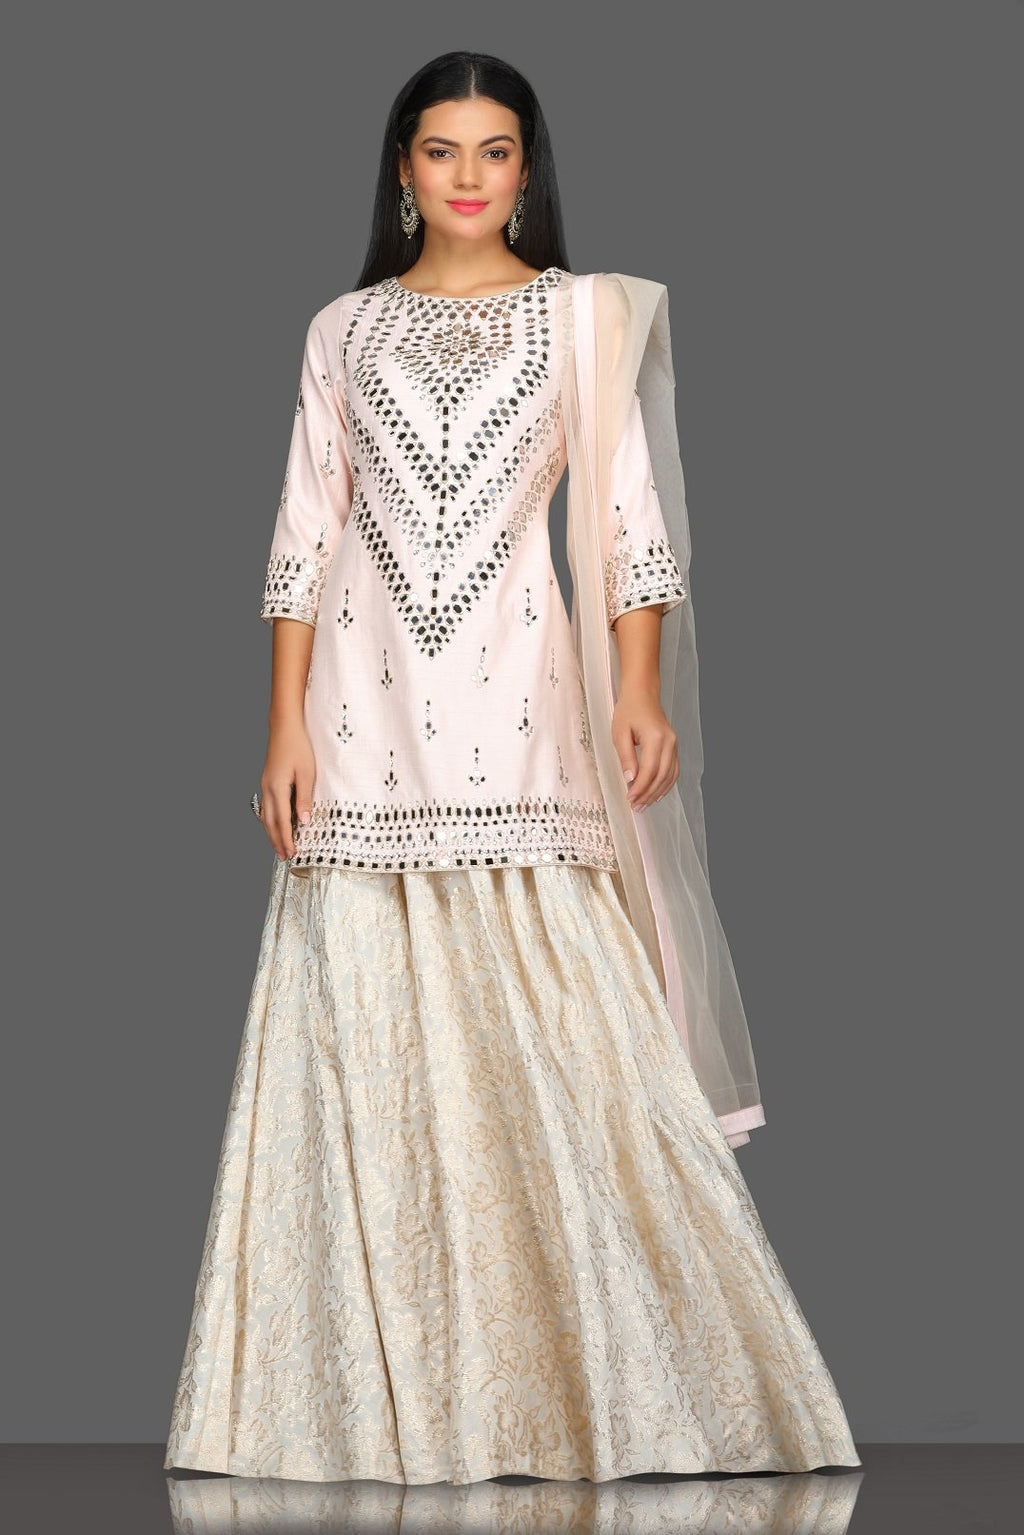 Buy gorgeous powder pink mirror work kurta skirt set online in USA with matching dupatta. Dazzle on weddings and special occasions with exquisite Indian designer dresses, sharara suits, Anarkali suits from Pure Elegance Indian fashion store in USA.-full view